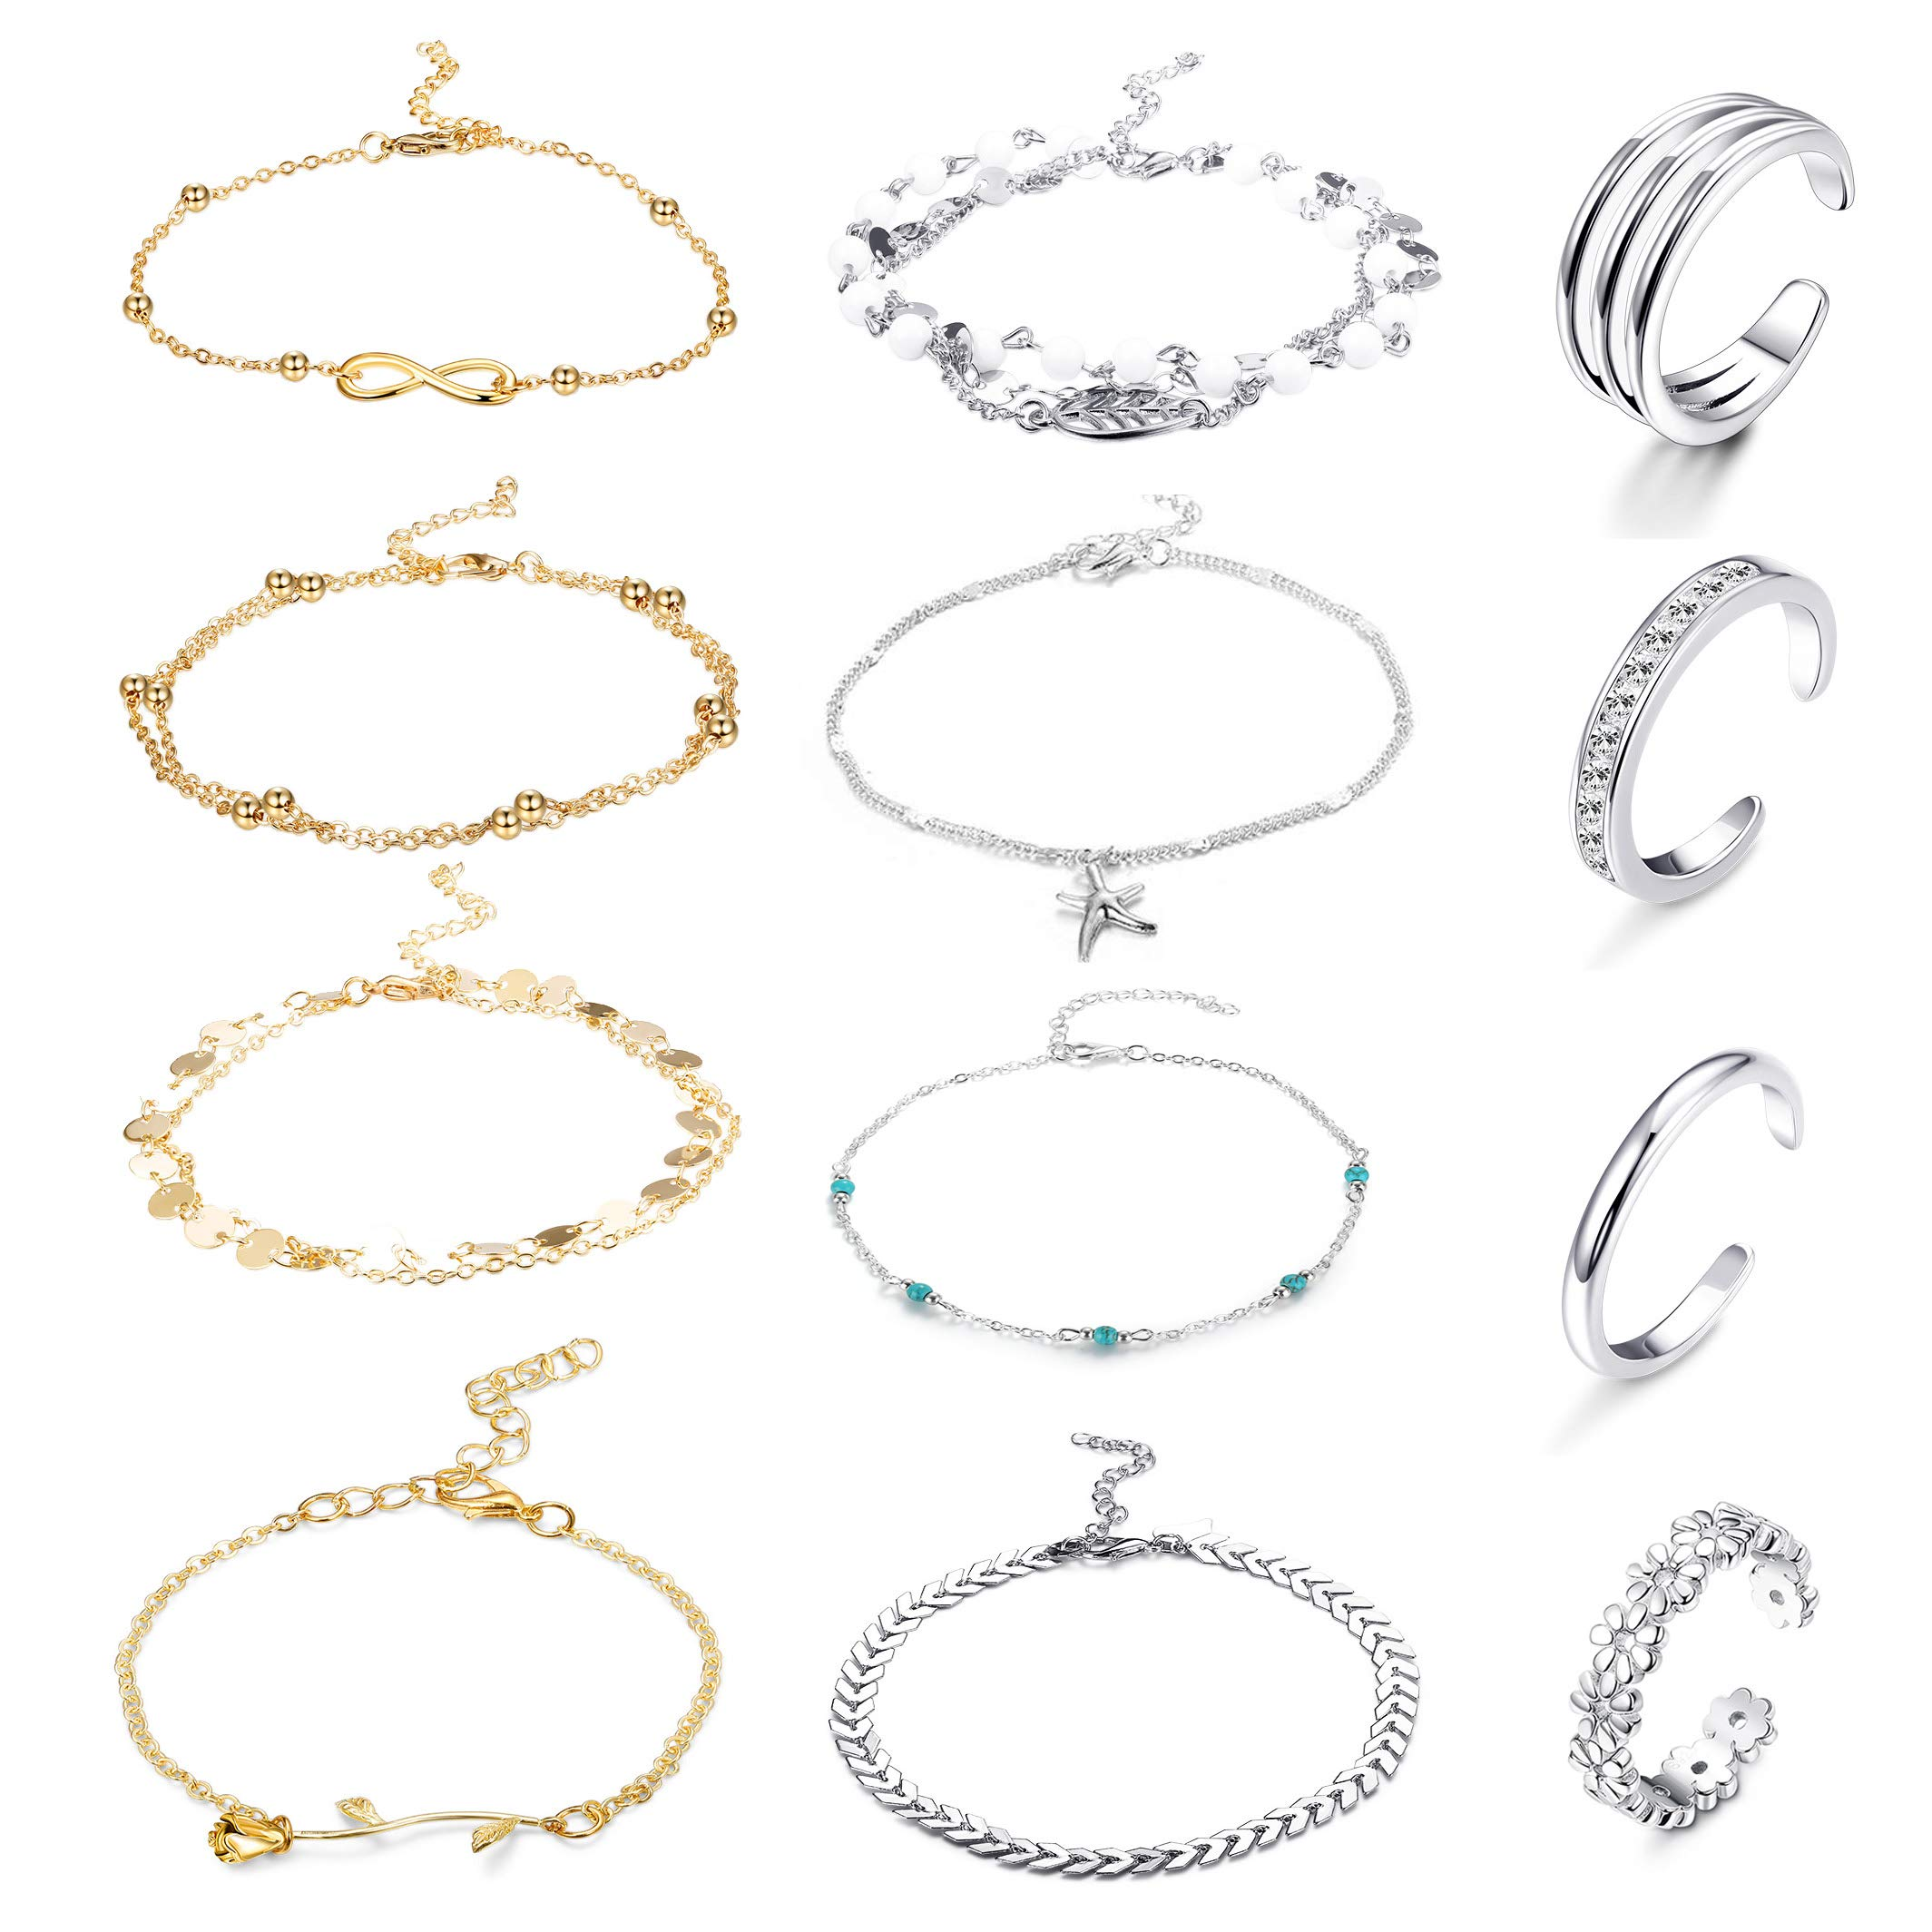 FUNRUN JEWELRY 12PCS Anklet and Toe Ring Set for Women Girls Beach Ankle Bracelets Adjustable Open Toe Ring Foot Jewelry (Color A) by FUNRUN JEWELRY